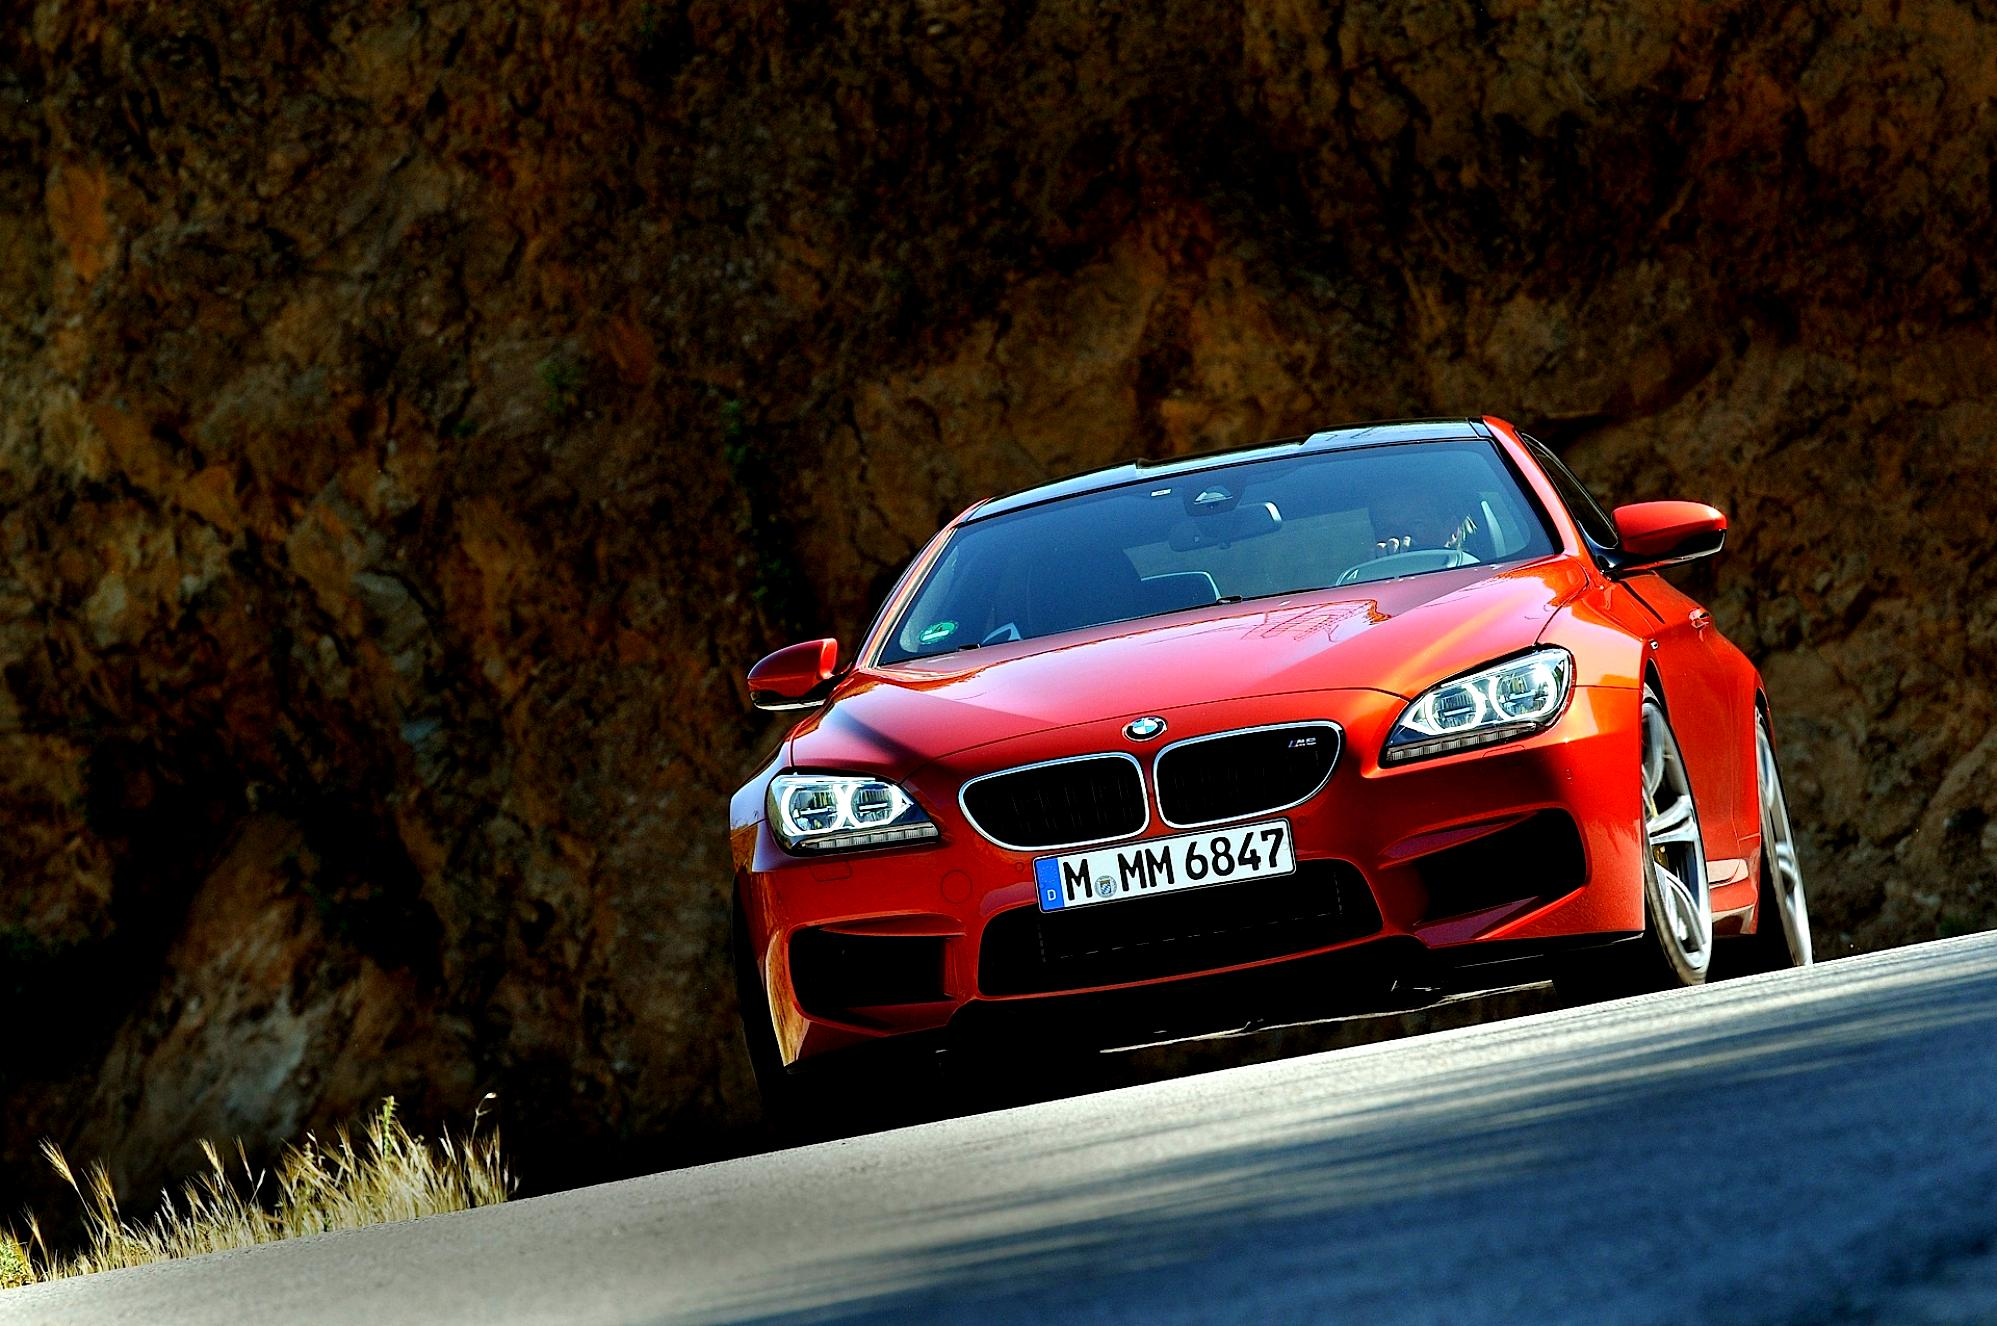 BMW M6 Coupe F13 2012 #69